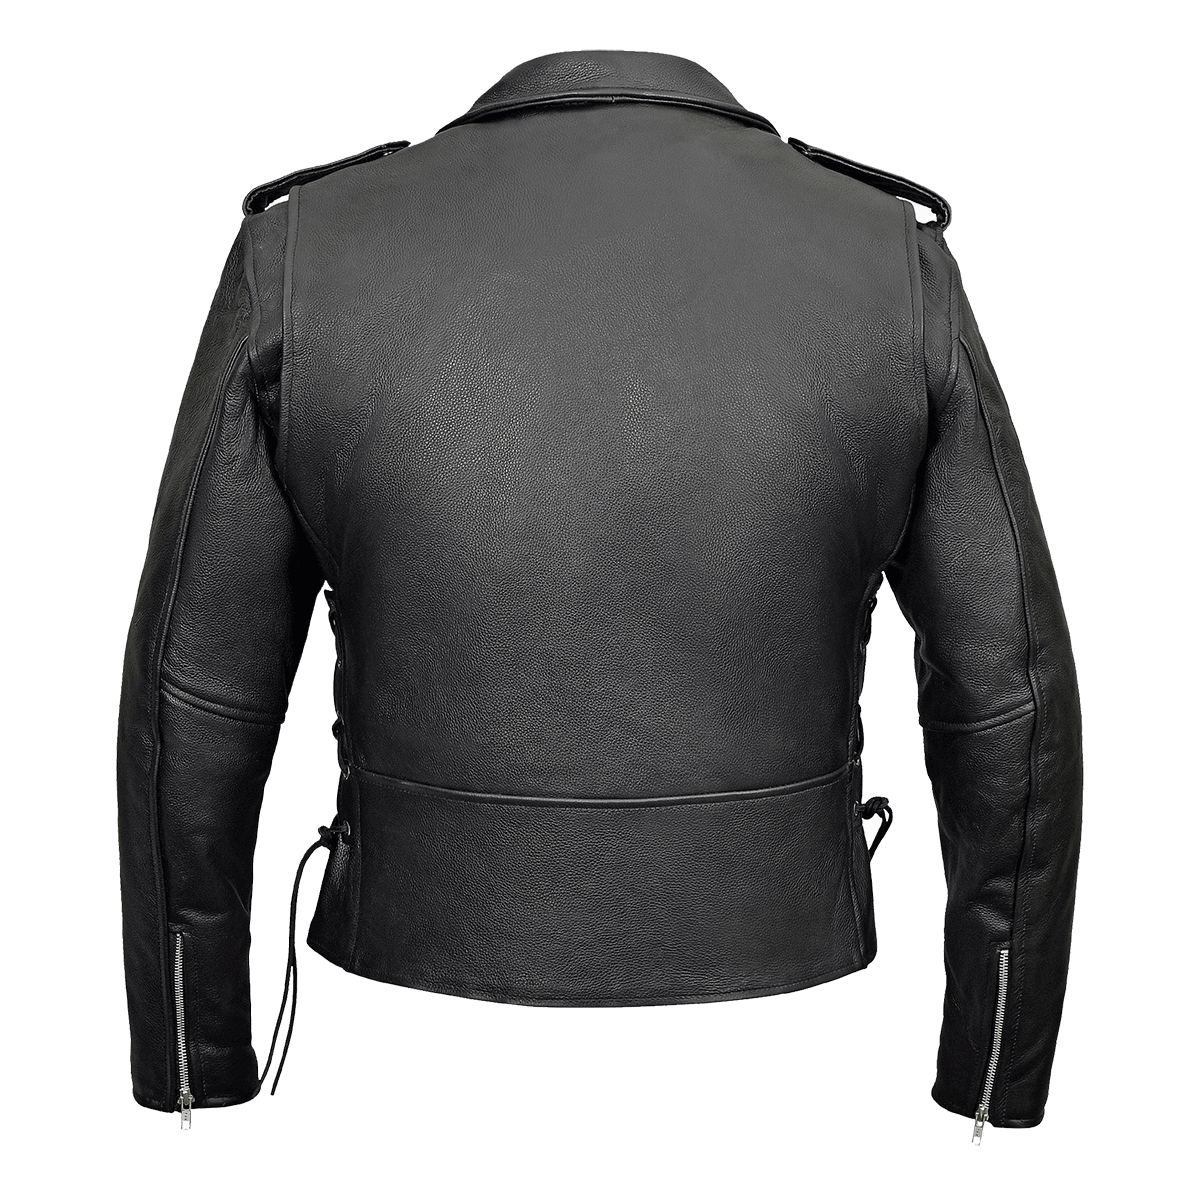 cc7bd0575a05 ... Vance Leather VL515 Men s Top Grain Leather Classic Motorcycle Jacket W Lace  Sides and Zip